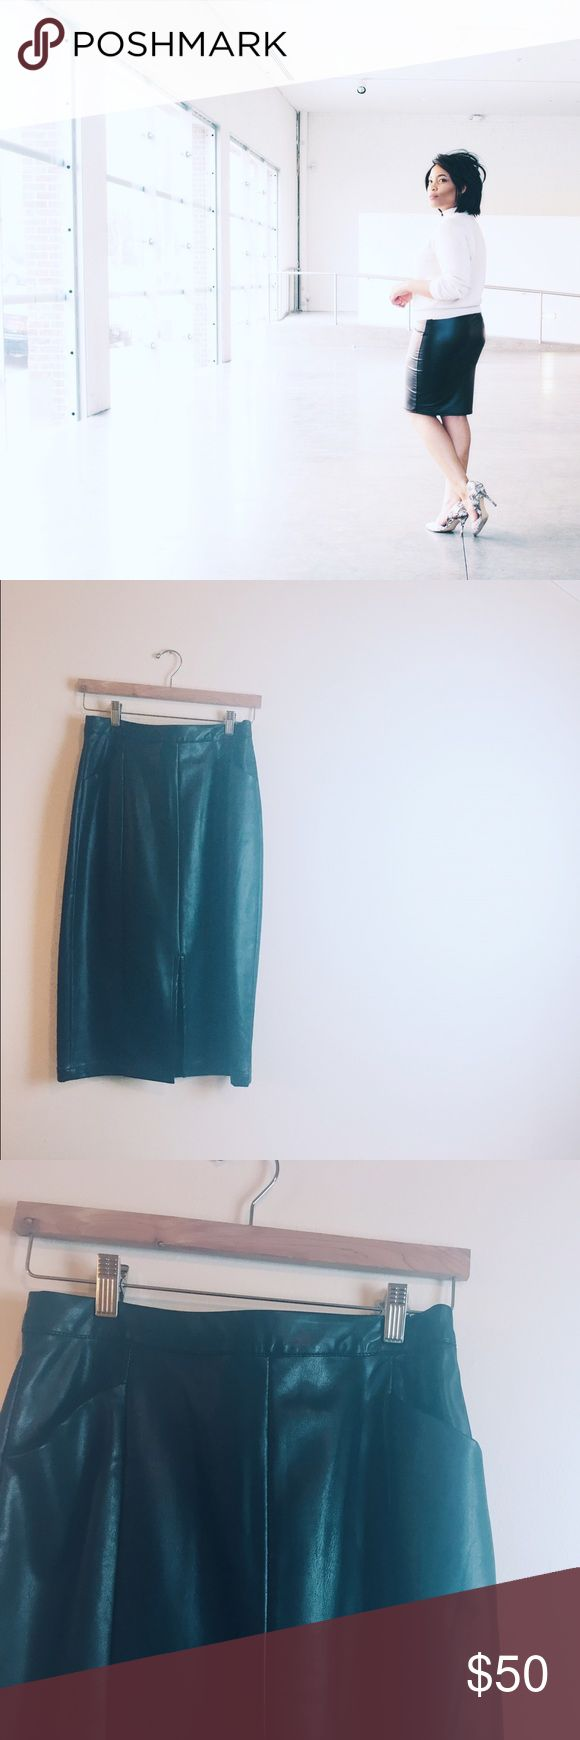 🎉FRI-YAY SALE | Leather Black Skirt Heavily lined and deep pockets! Worn once (for the first photo). Cute slit in the middle on front of Skirt. Zips and clasps in the back! | very open to reasonable offers Skirts Pencil